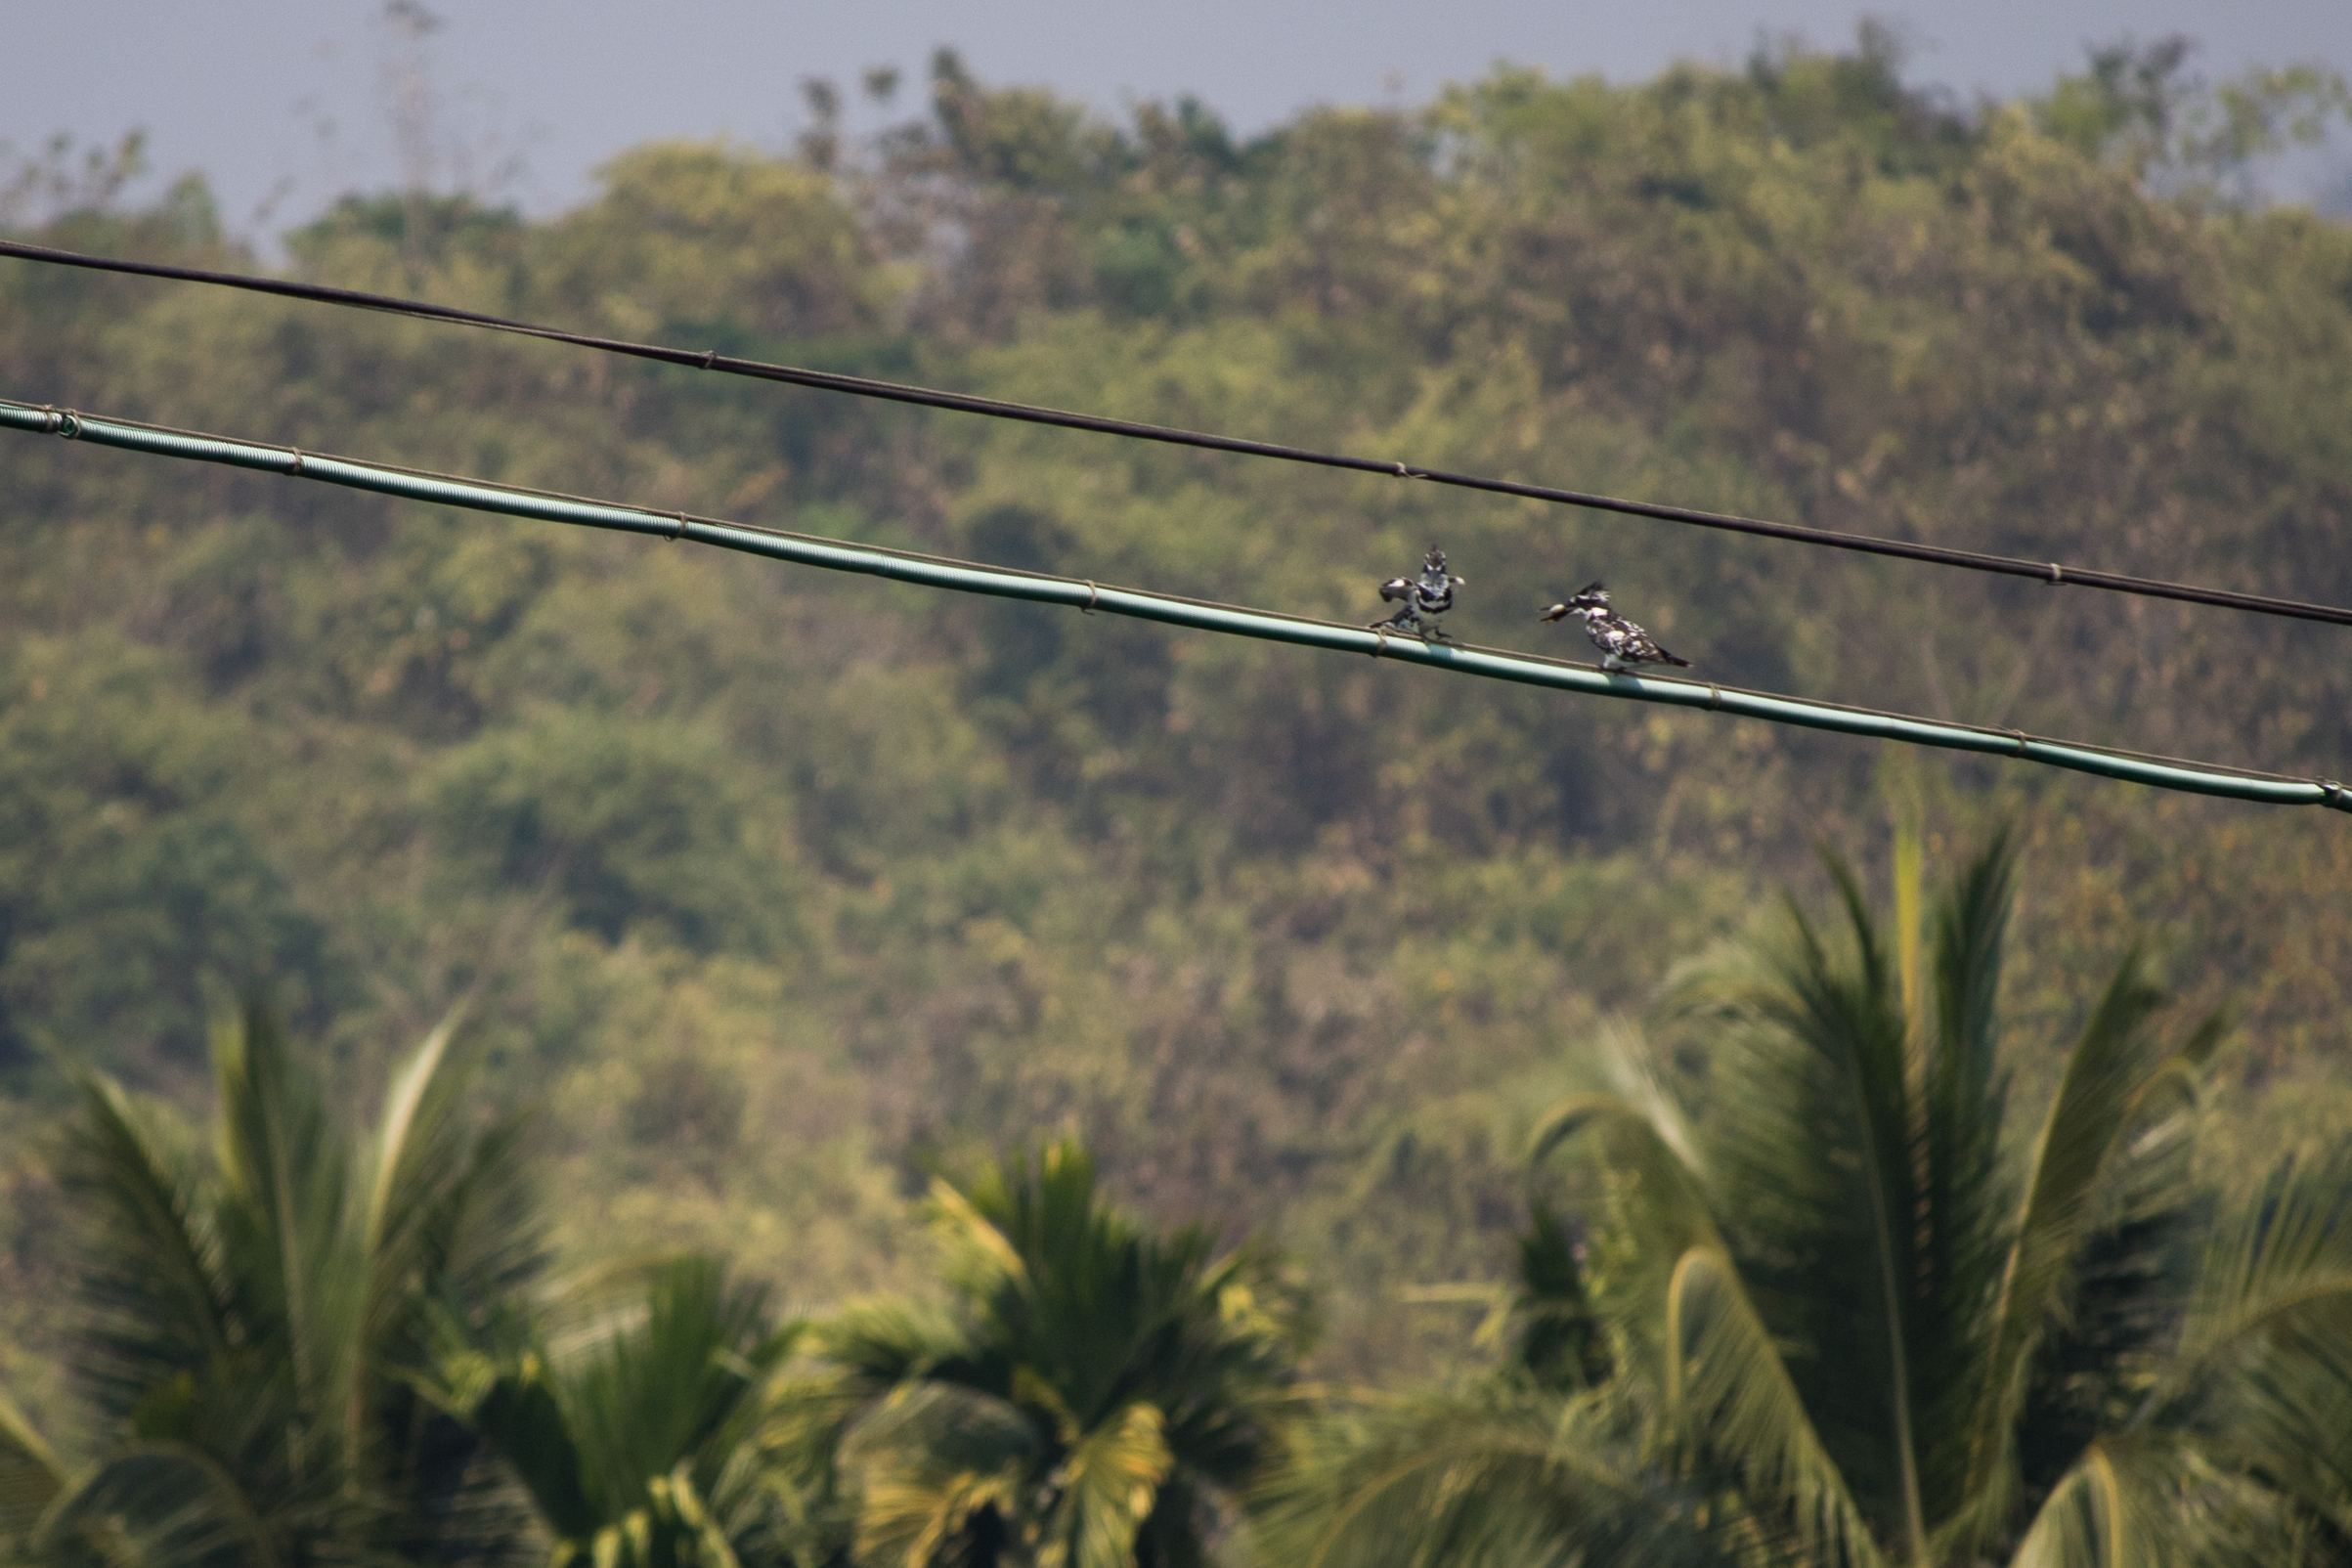 Pied Kingfishers (Ceryle rudis) in Thattekad Bird Sanctuary, Kerala, India. February 2015. Not baited. Not called in.